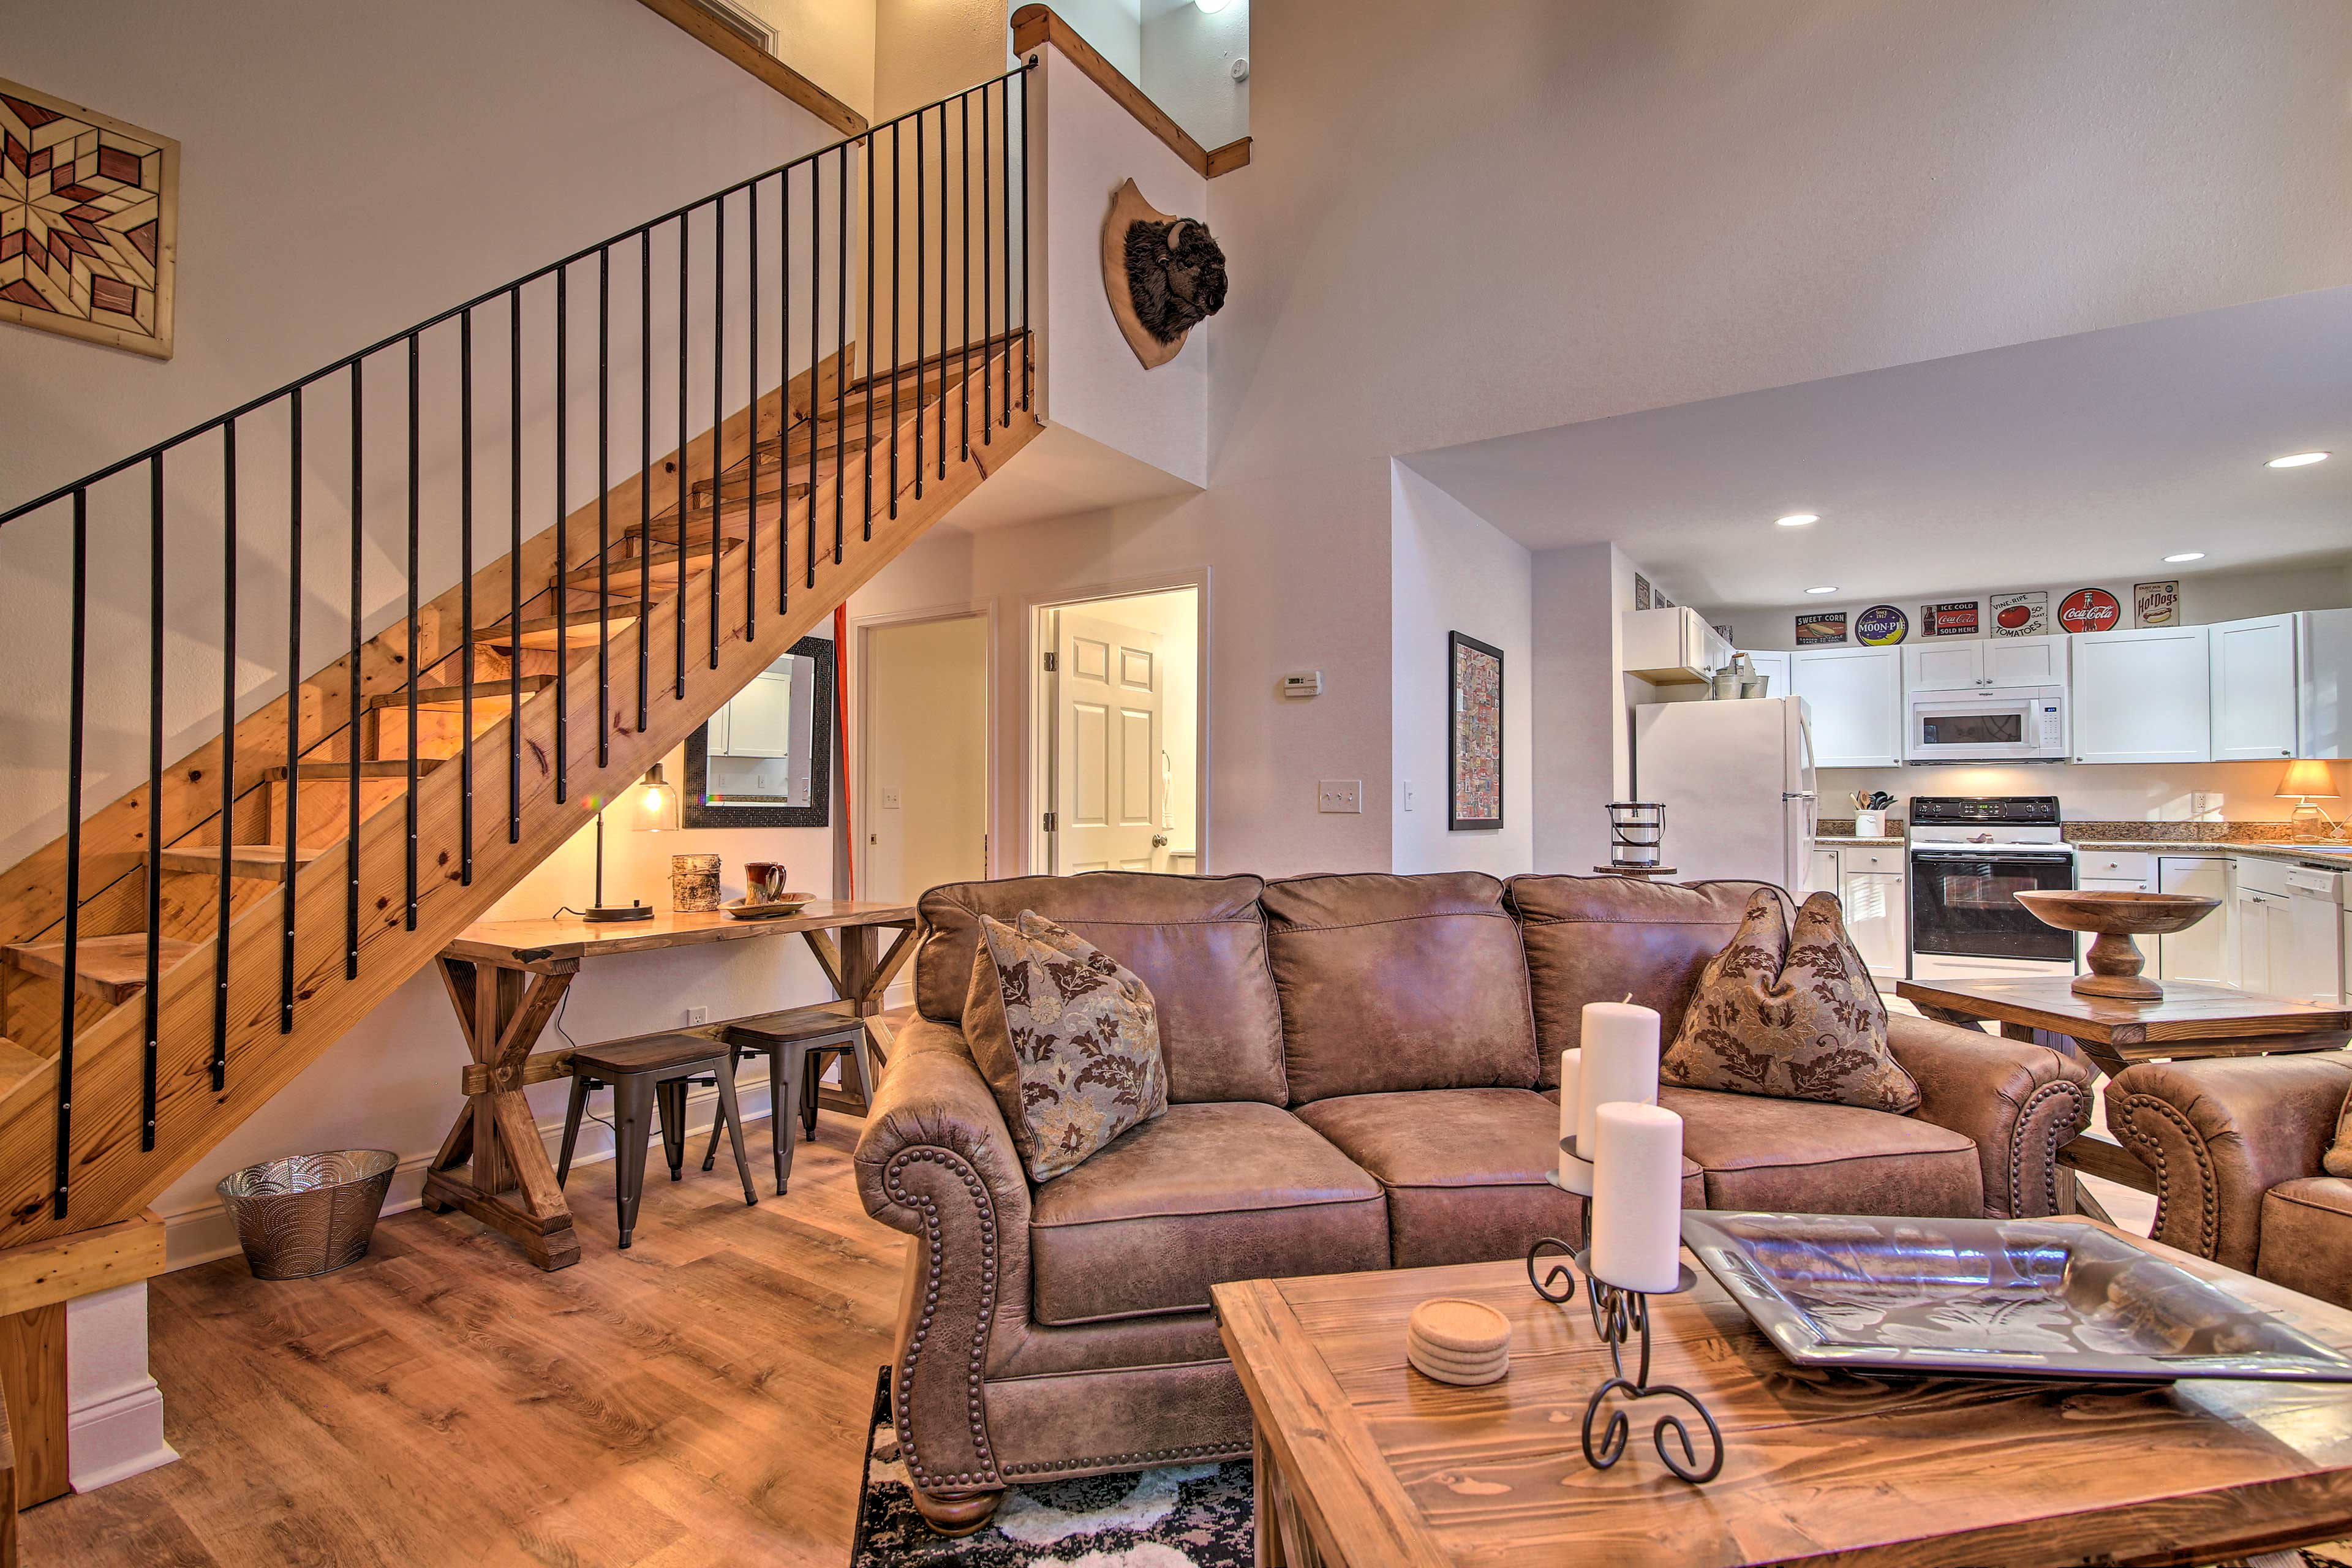 Enter the home and find a cozy living room.